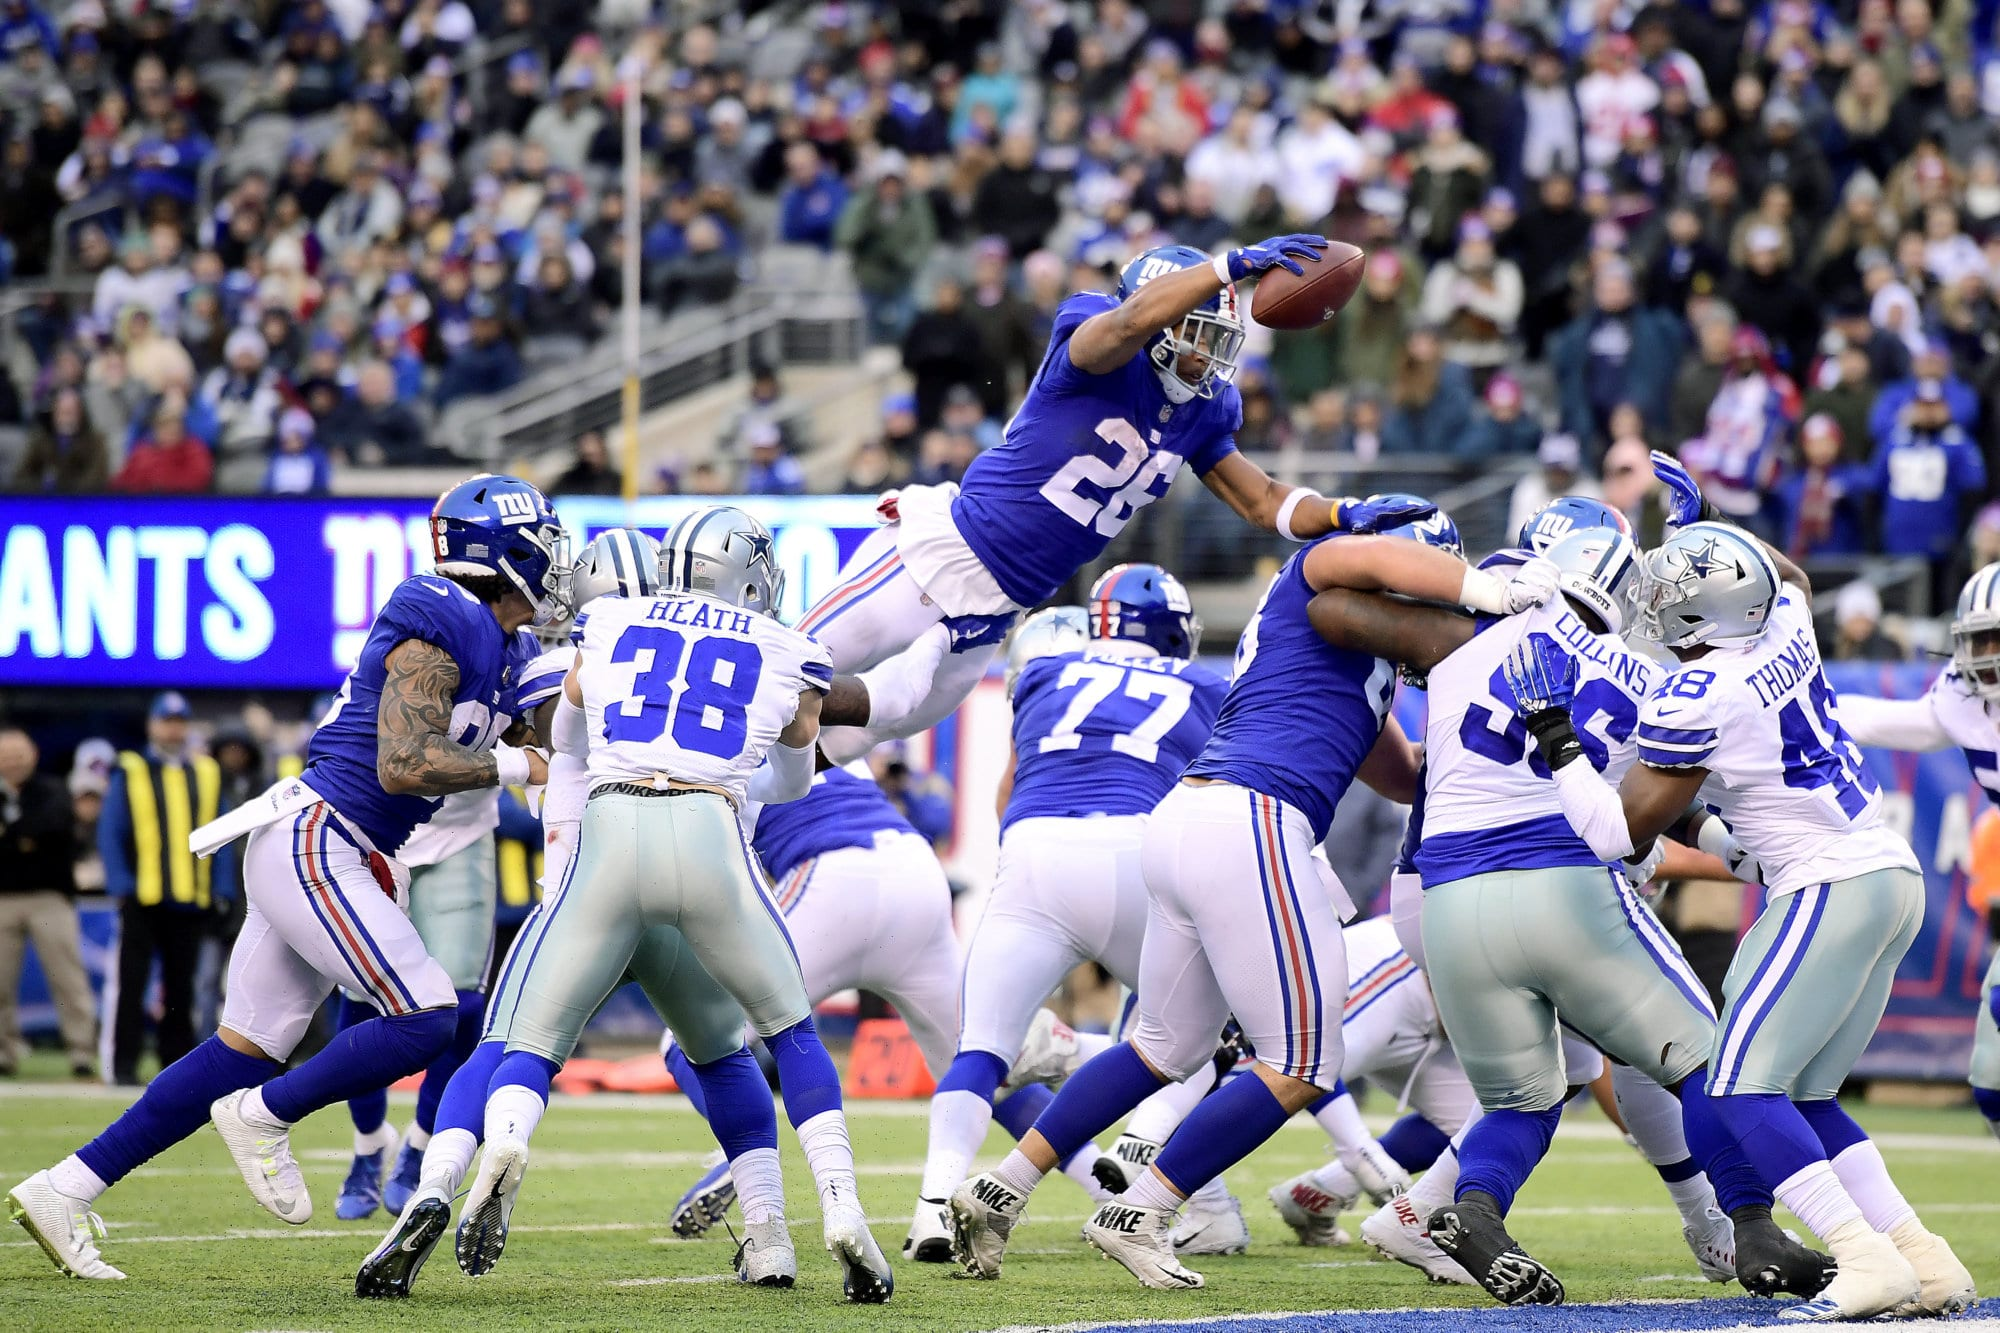 EAST RUTHERFORD, NEW JERSEY - DECEMBER 30:  Saquon Barkley #26 of the New York Giants dives across the goal-line for a fourth quarter touchdown against the Dallas Cowboys at MetLife Stadium on December 30, 2018 in East Rutherford, New Jersey. (Photo by Steven Ryan/Getty Images)